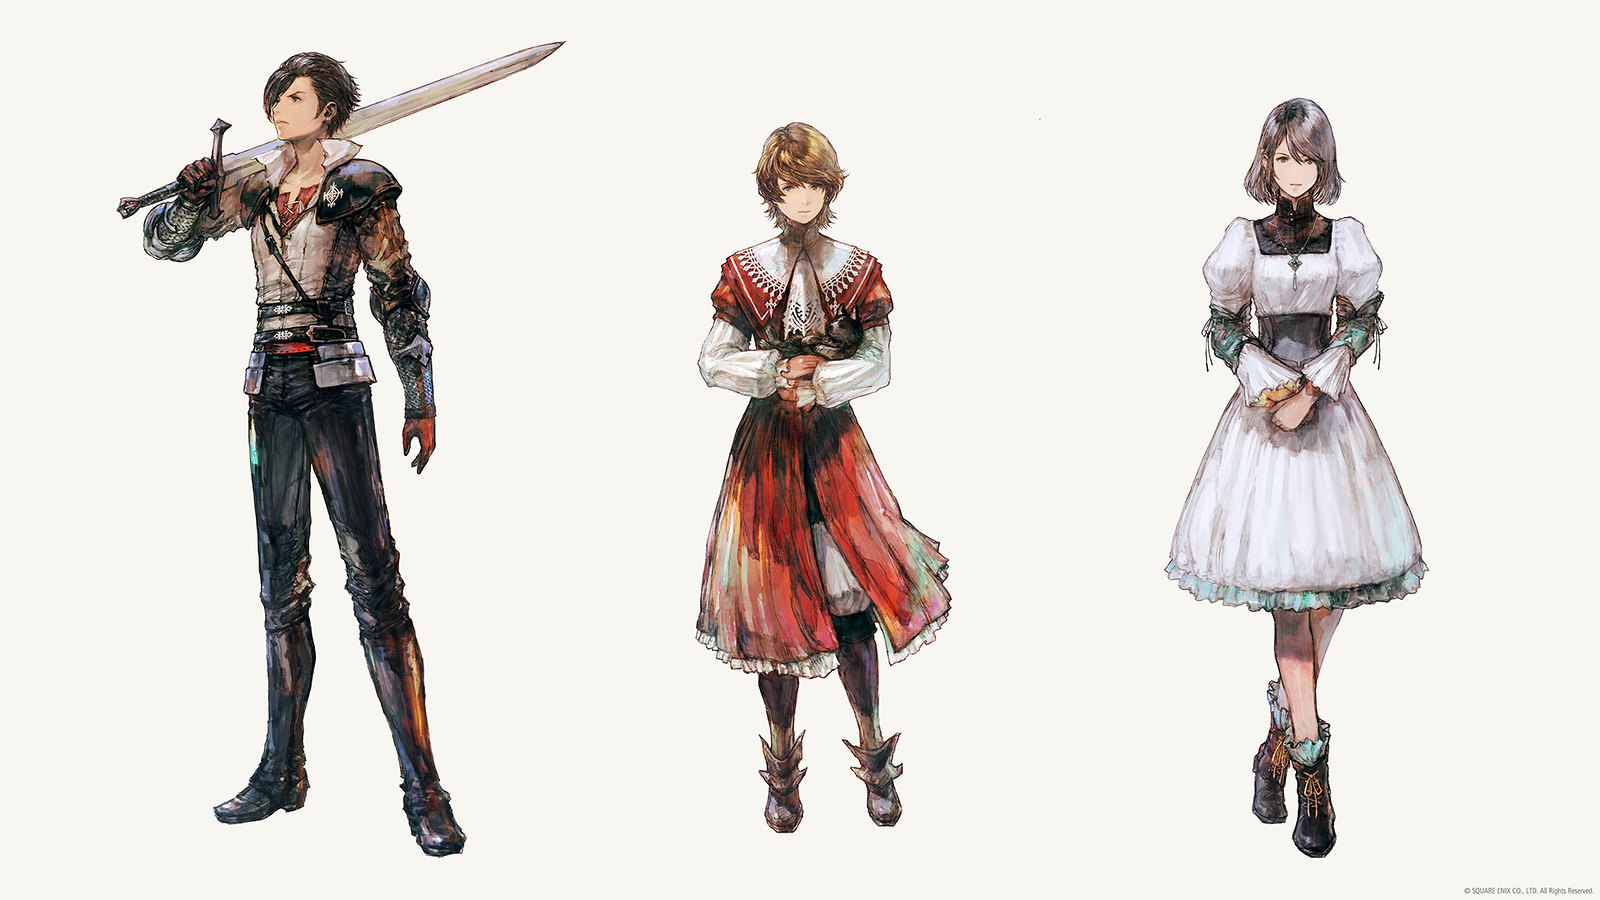 Three protagonists of Final Fantasy XVI - Clive and Joshua Rosfield, and their adopted sister Jill Warrick.